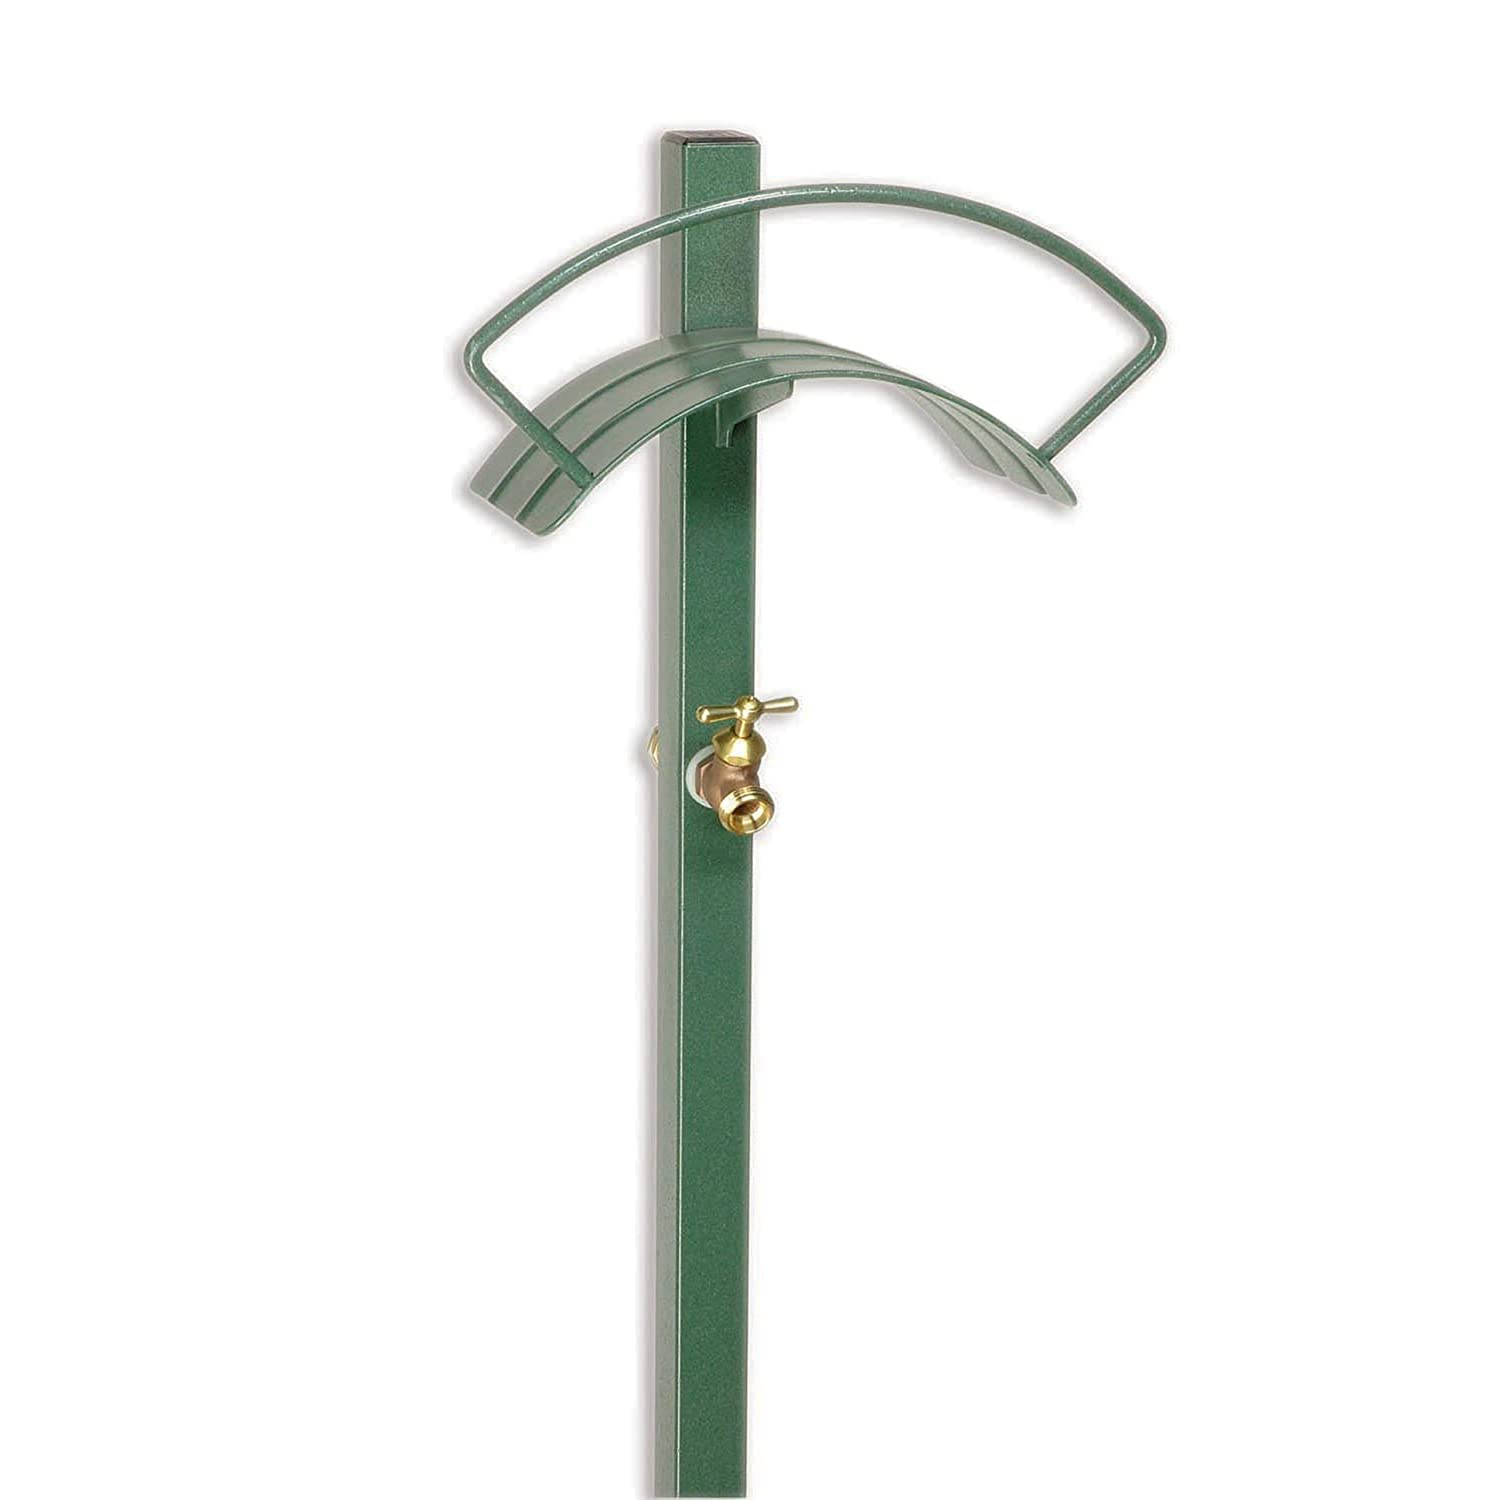 garden hose holder stake with faucet bib or without